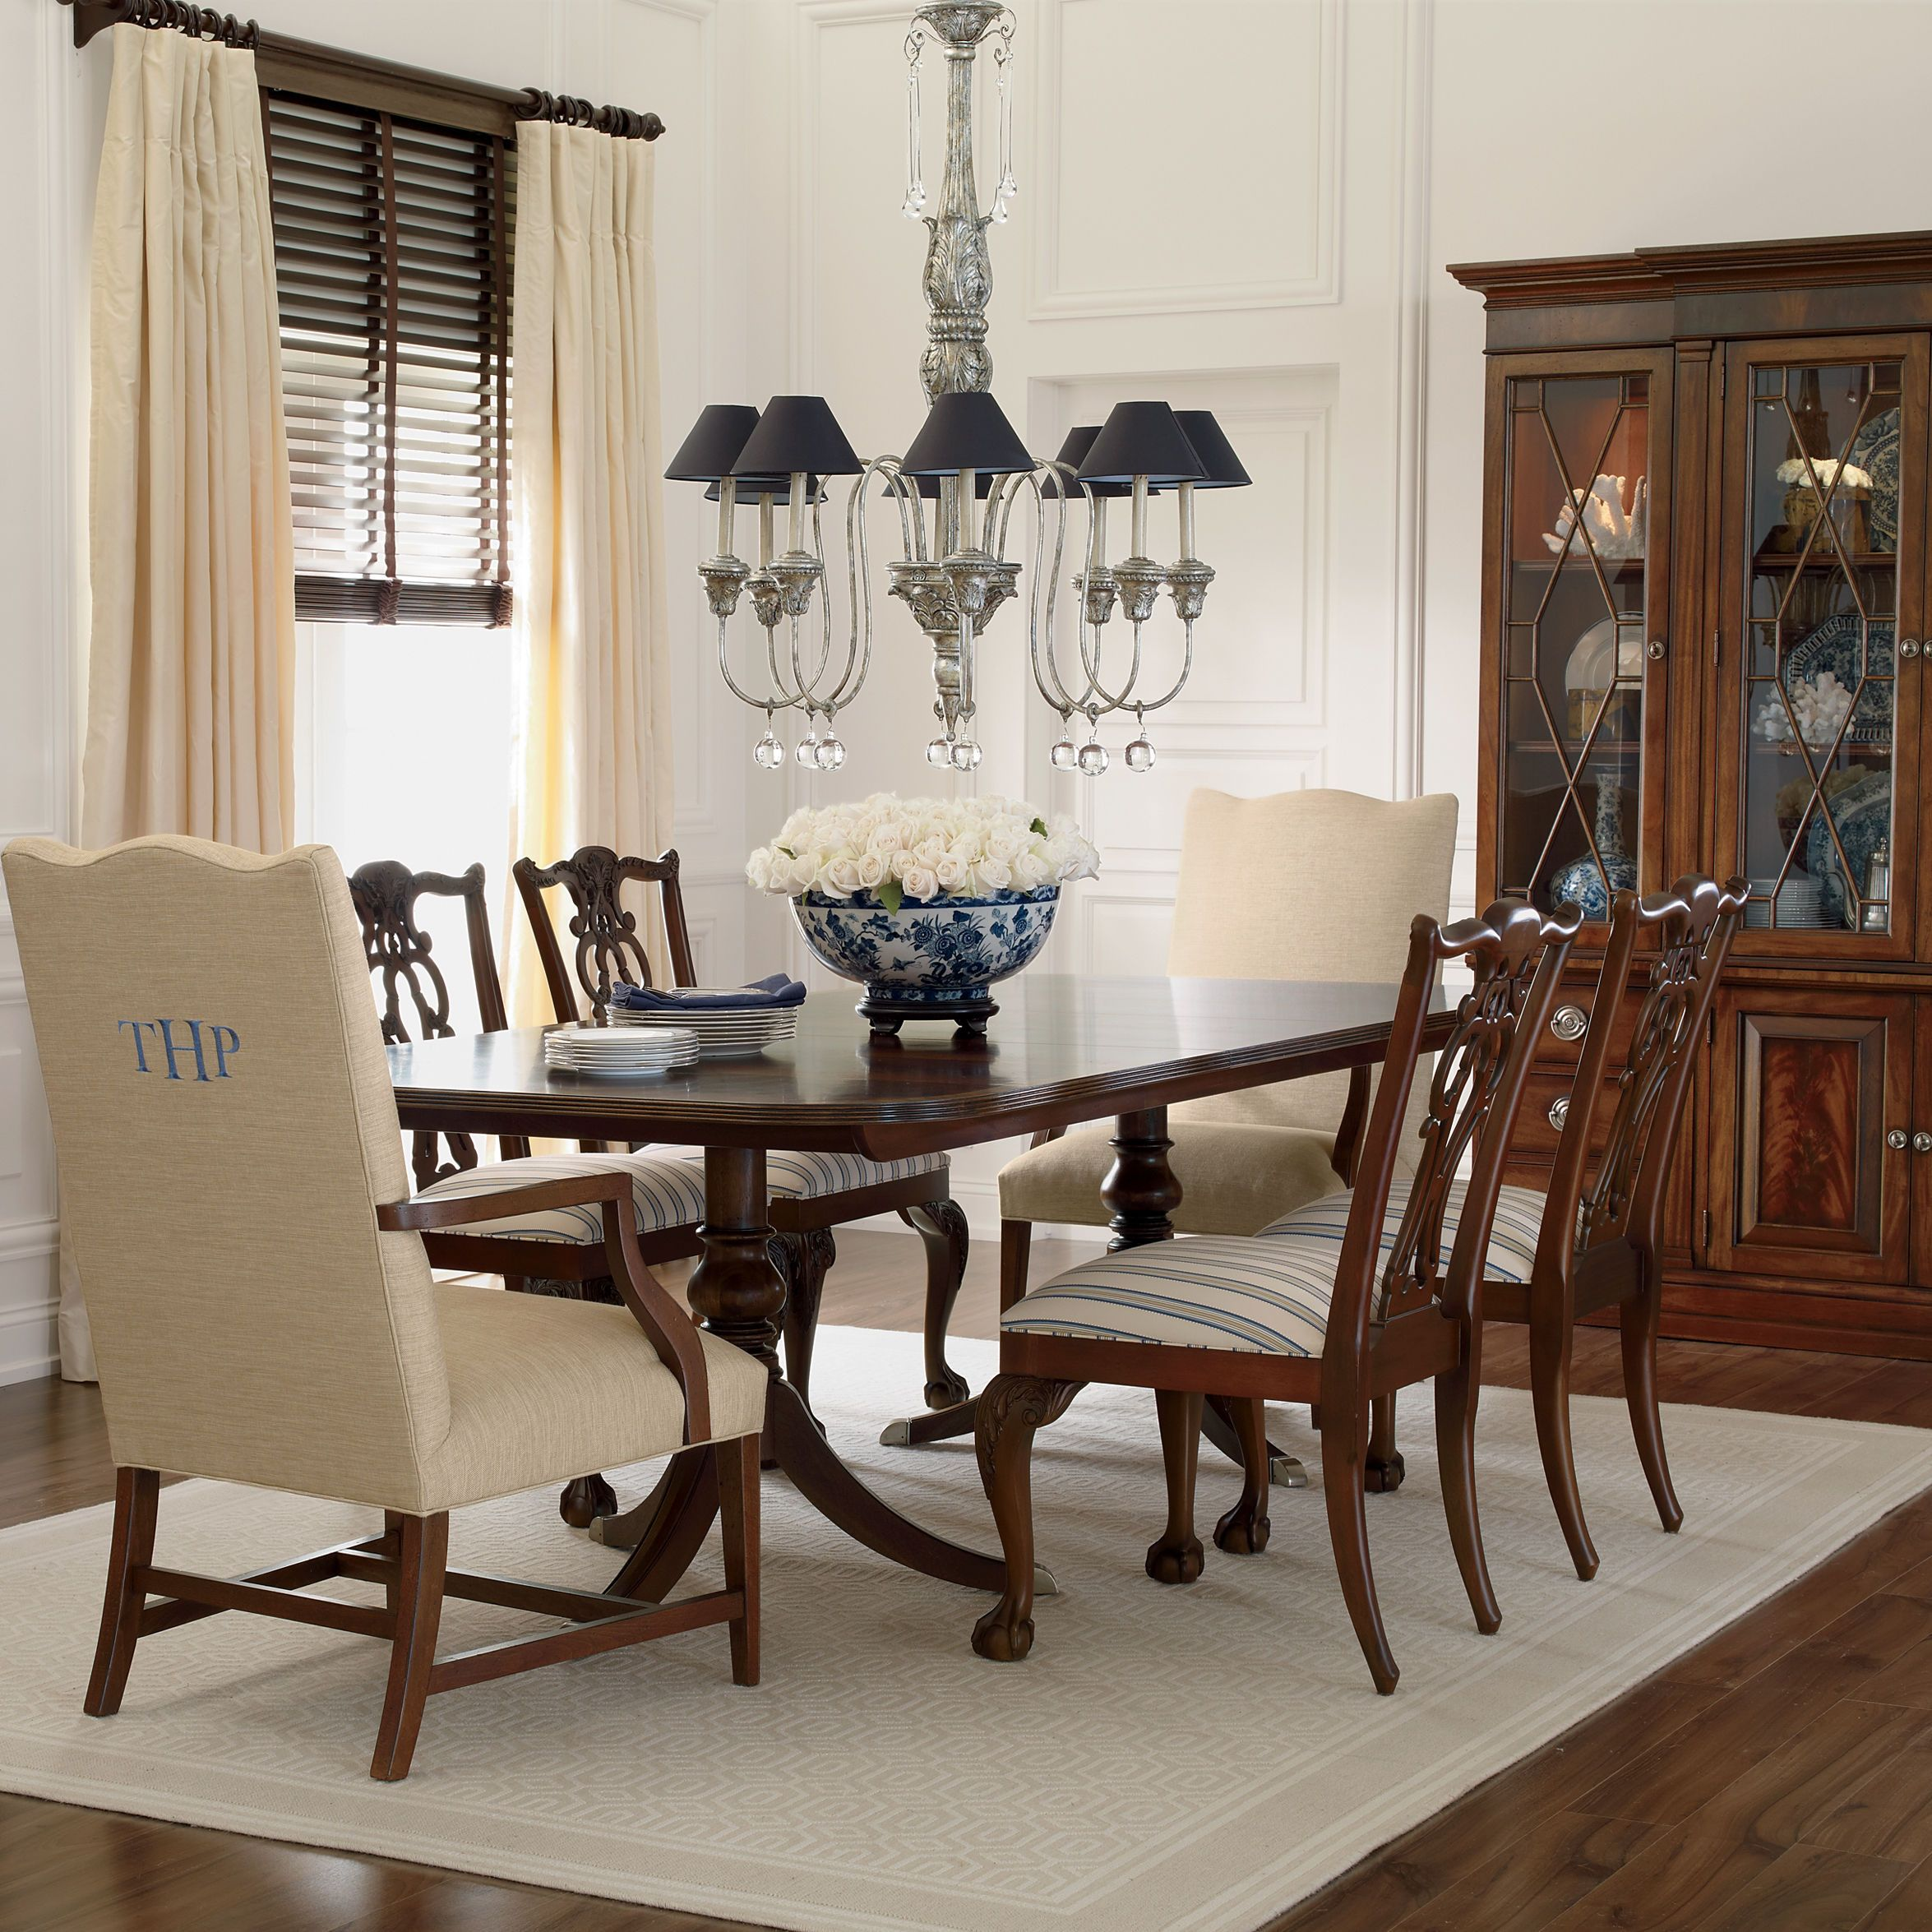 ethan allen dining chairs. Dining Rooms · Ethan Allen Chairs